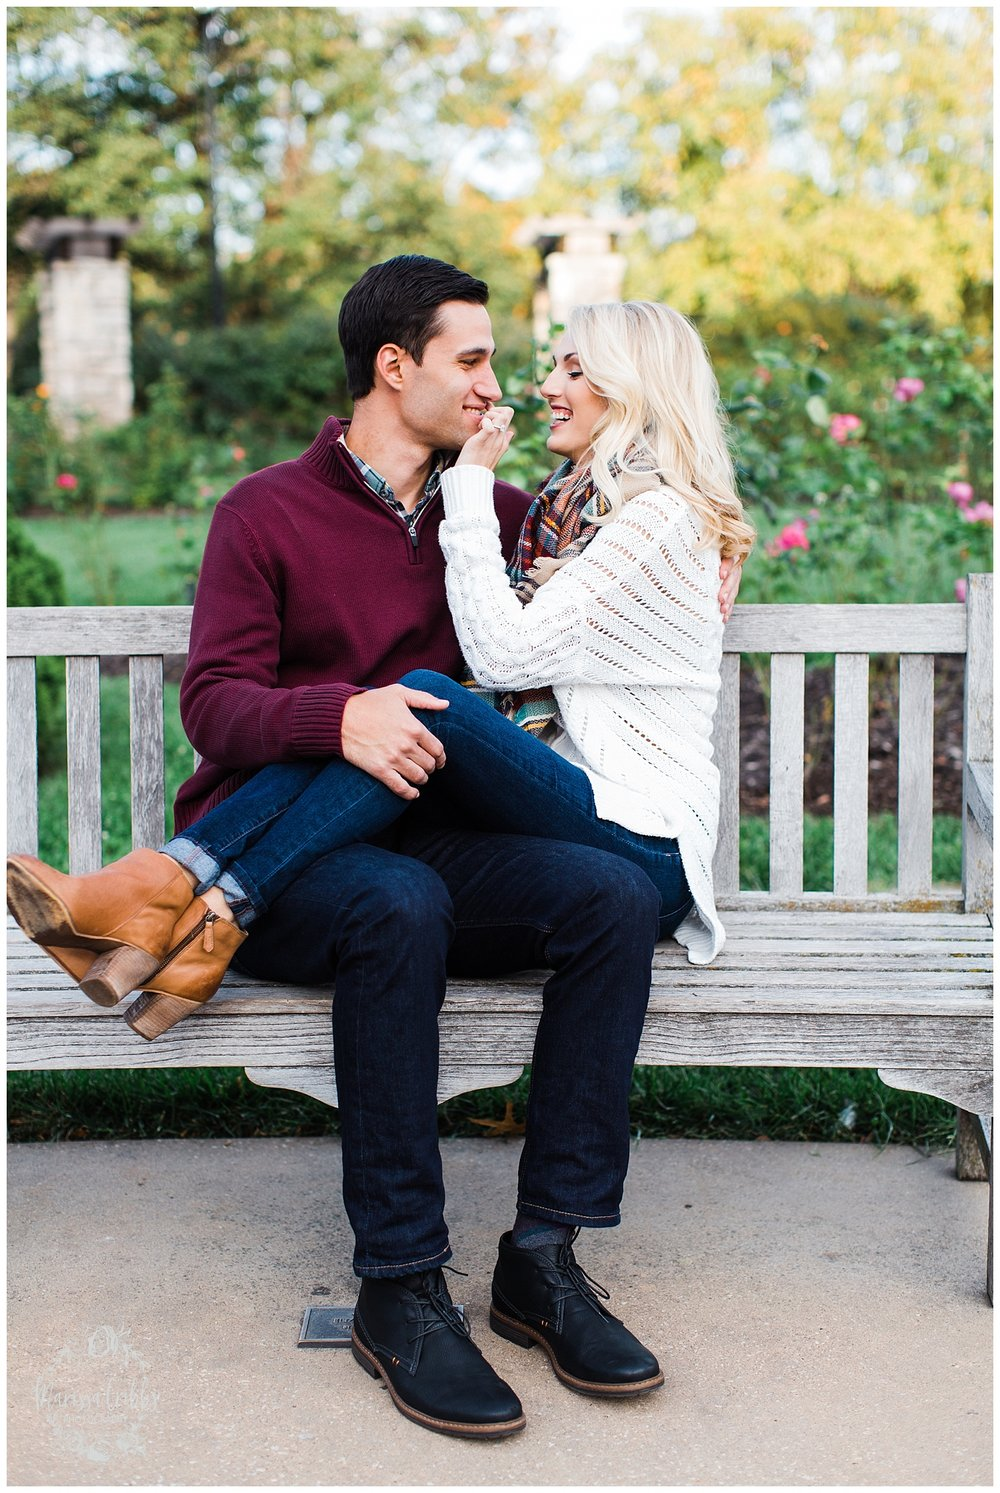 CLOE & GABE LIBERTY MEMORIAL ENGAGEMENT | MARISSA CRIBBS PHOTOGRAPHY | LOOSE PARK ENGAGEMENT_3457.jpg